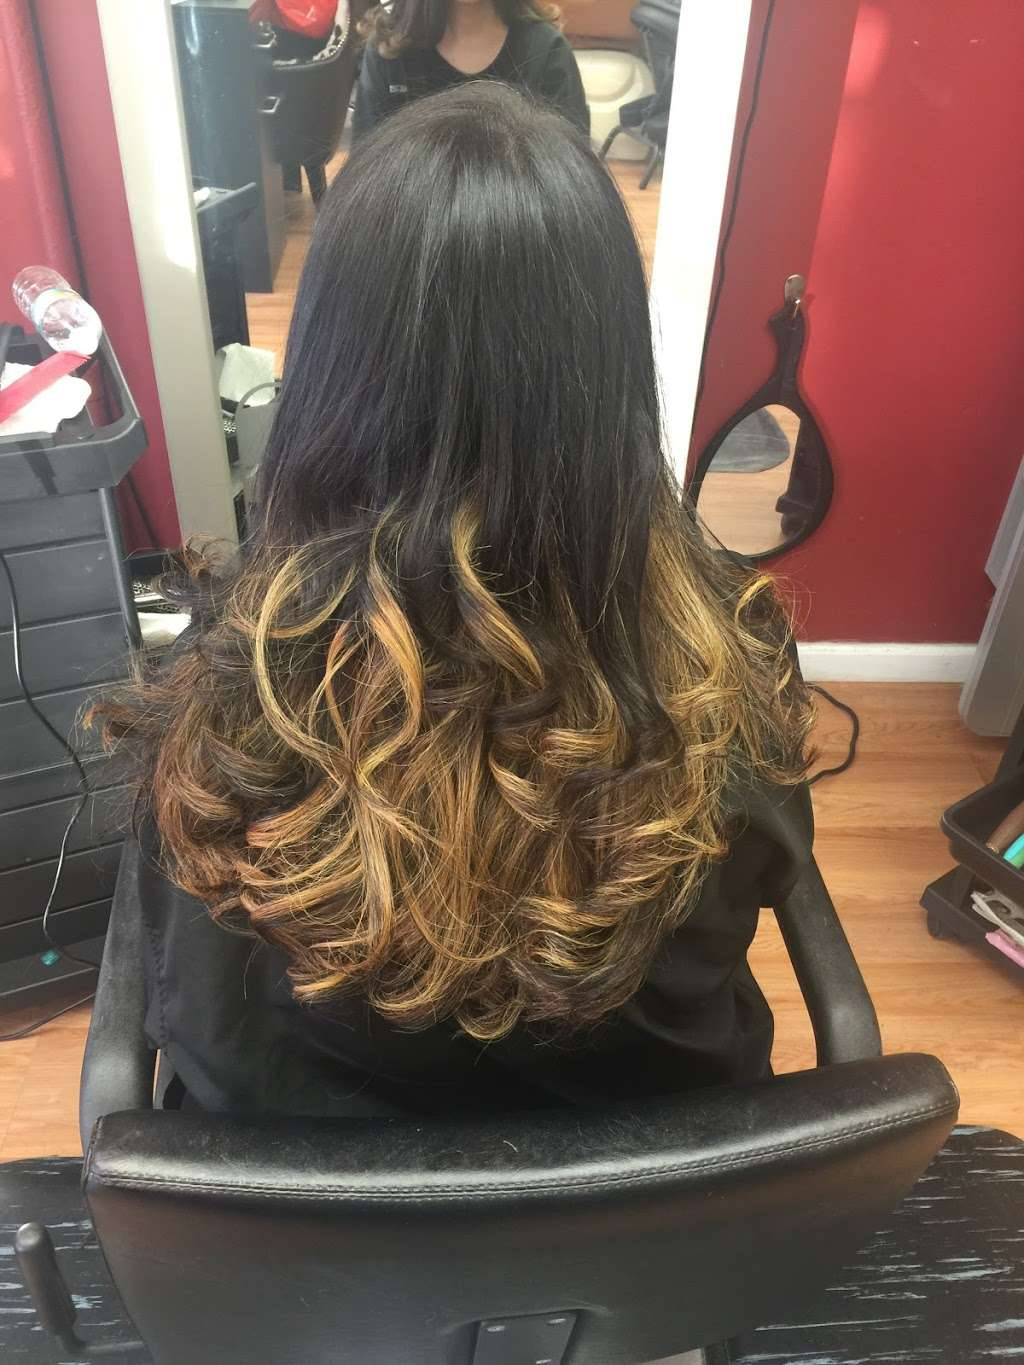 Sophisticut - hair care  | Photo 2 of 8 | Address: 366 Anderson Ave, Cliffside Park, NJ 07010, USA | Phone: (201) 941-3946